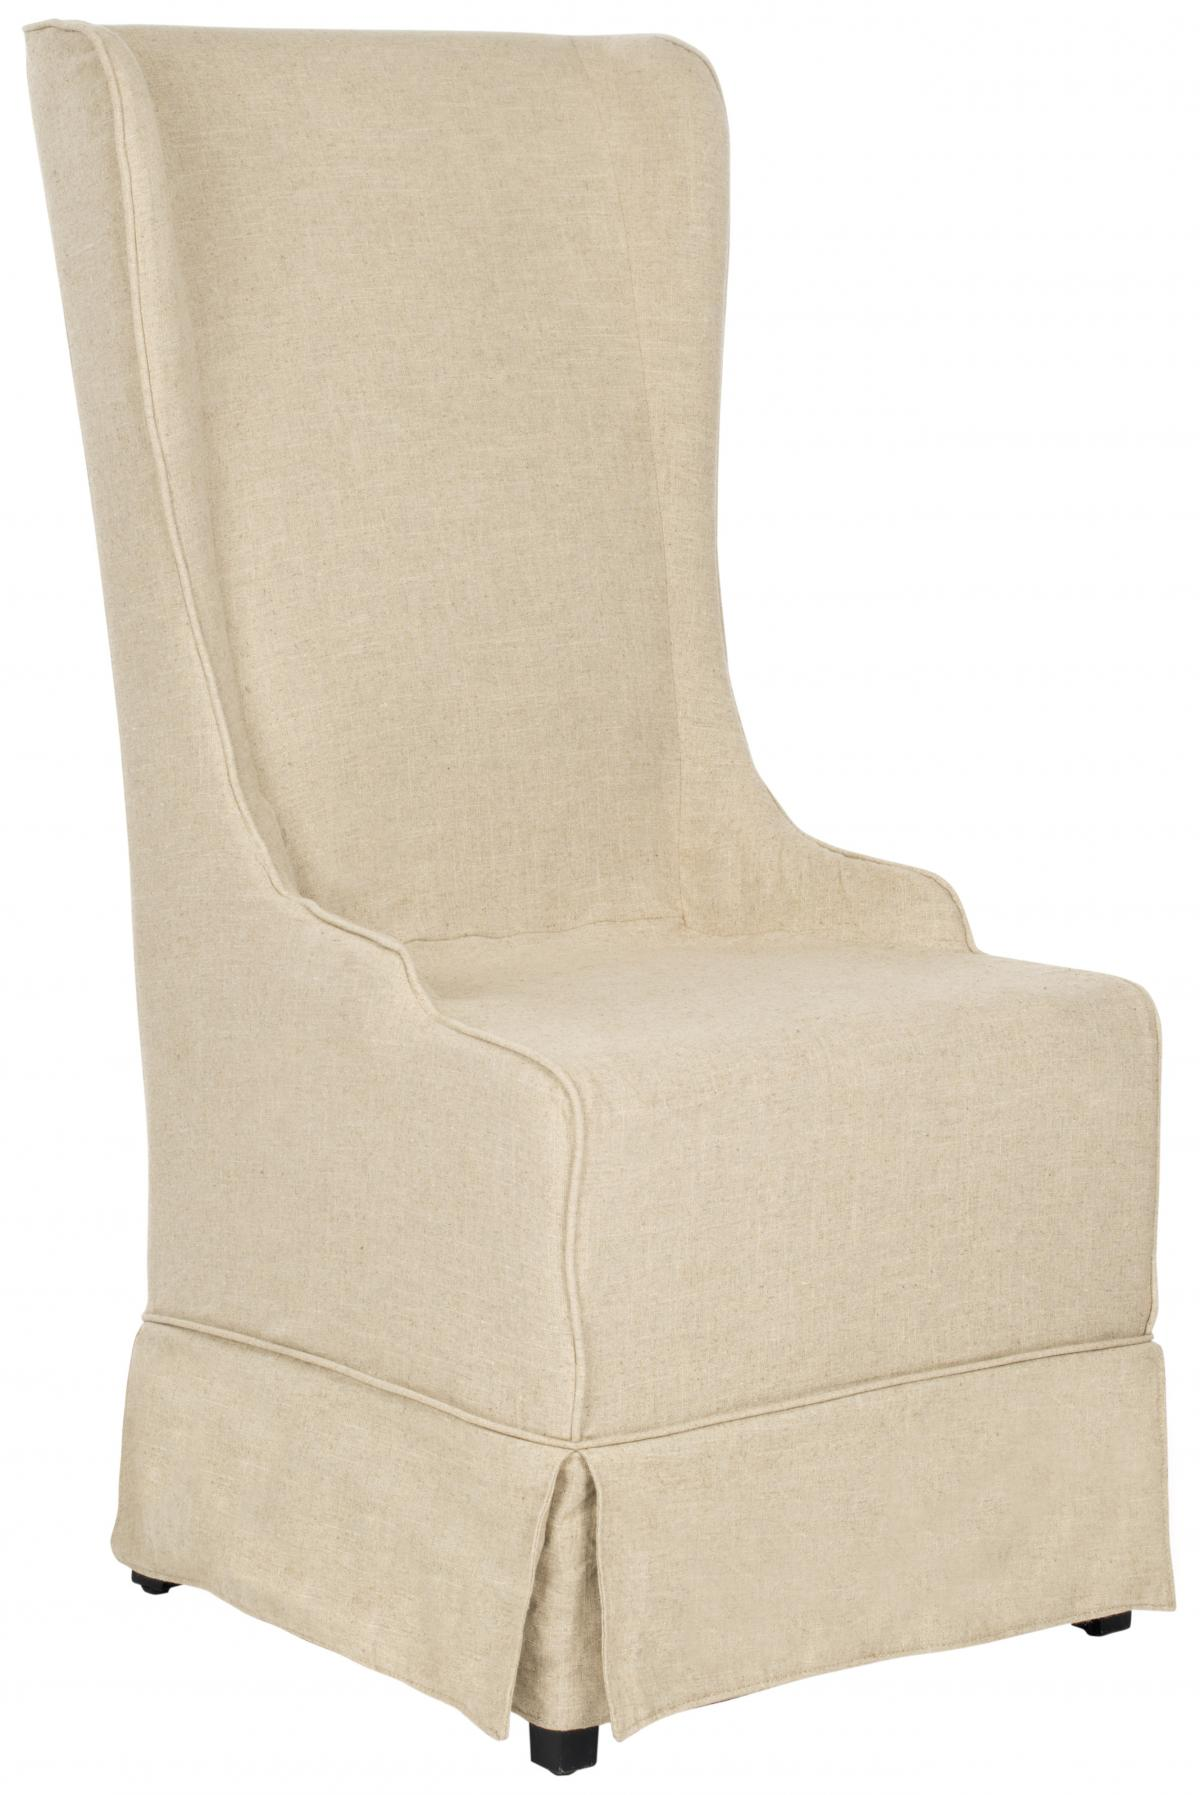 Safavieh Bacall Dining Chair With Safavieh Bacall High  : safavieh mcr4501l bacall slipcover chair hemp1887 H MCR4501L from amlibgroup.com size 1200 x 1795 jpeg 154kB